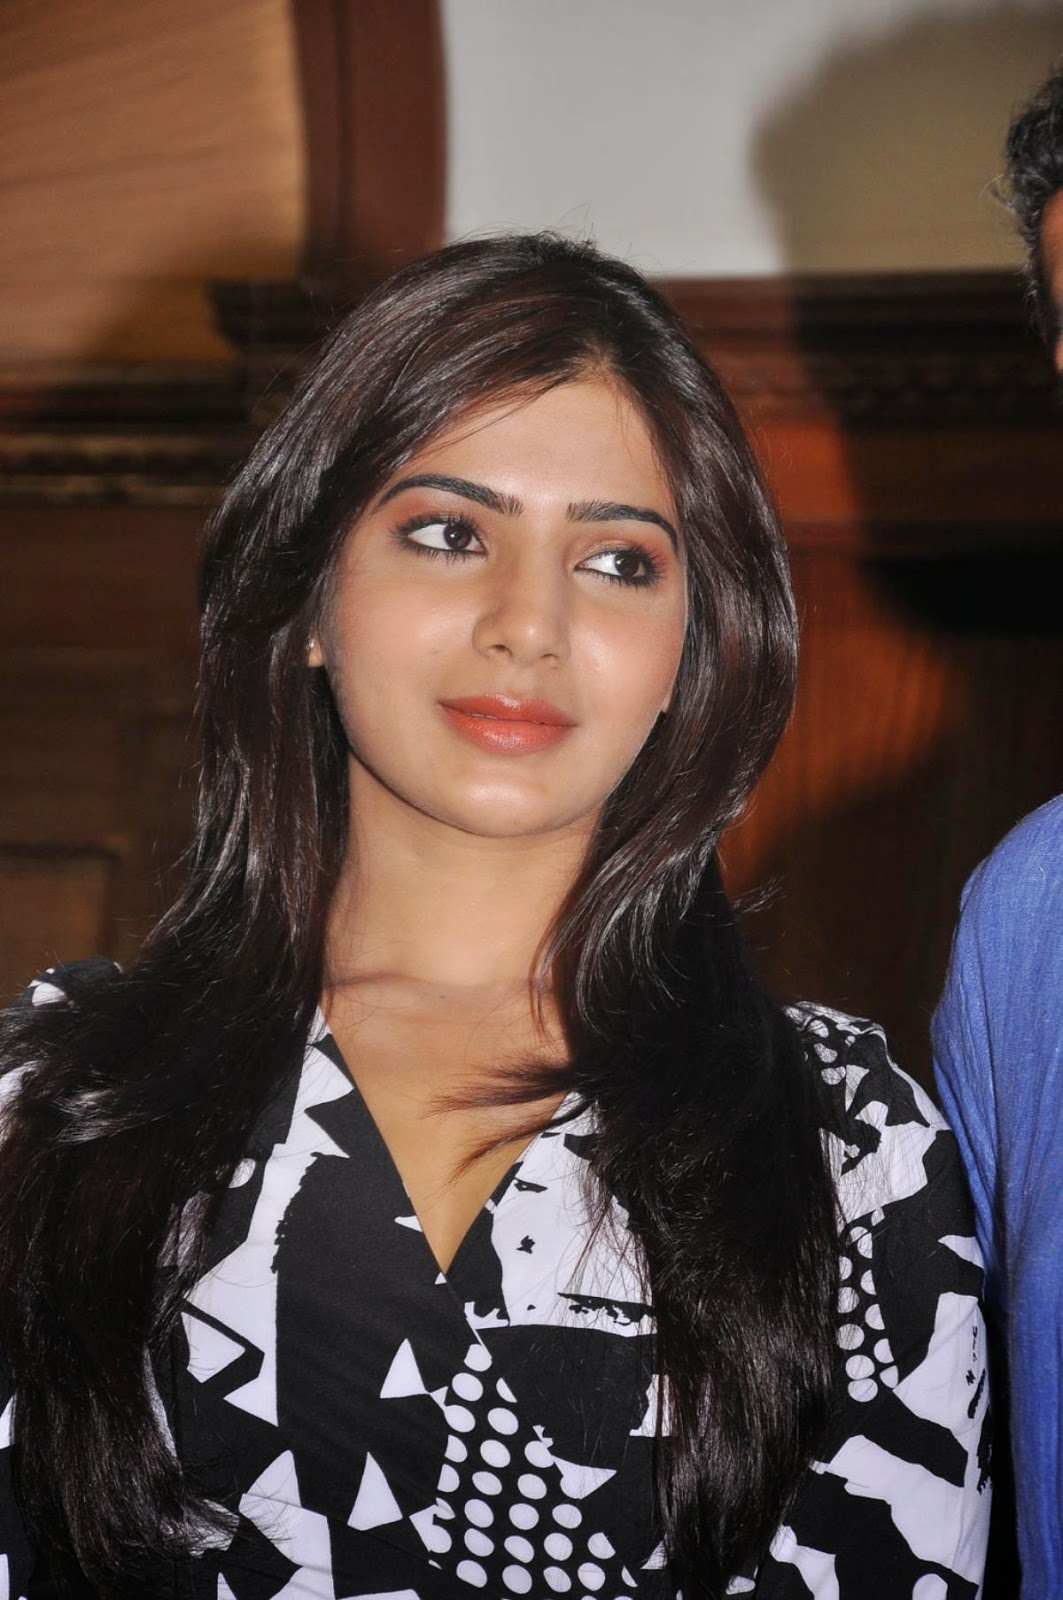 samantha latest hot hd photos - cap